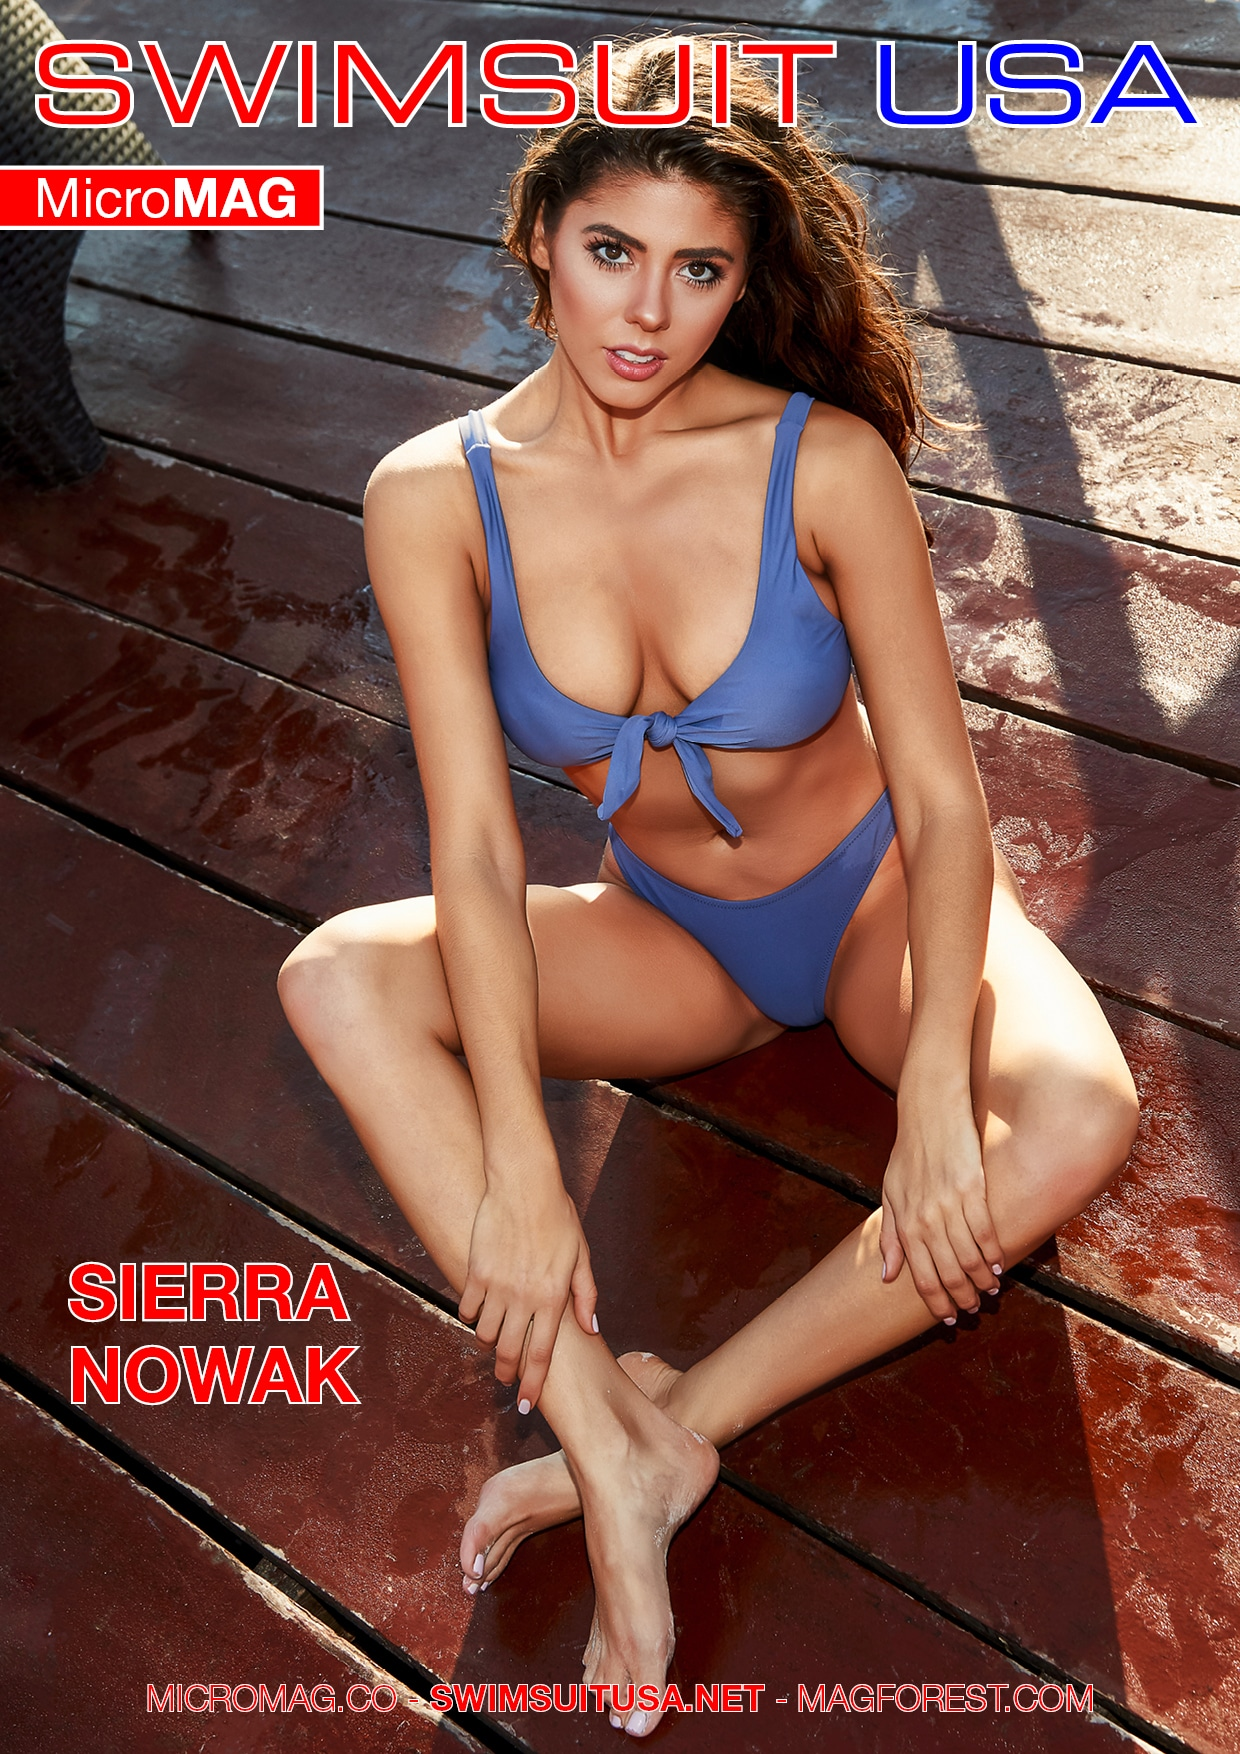 Swimsuit USA MicroMAG - Tara Morales - Issue 2 4